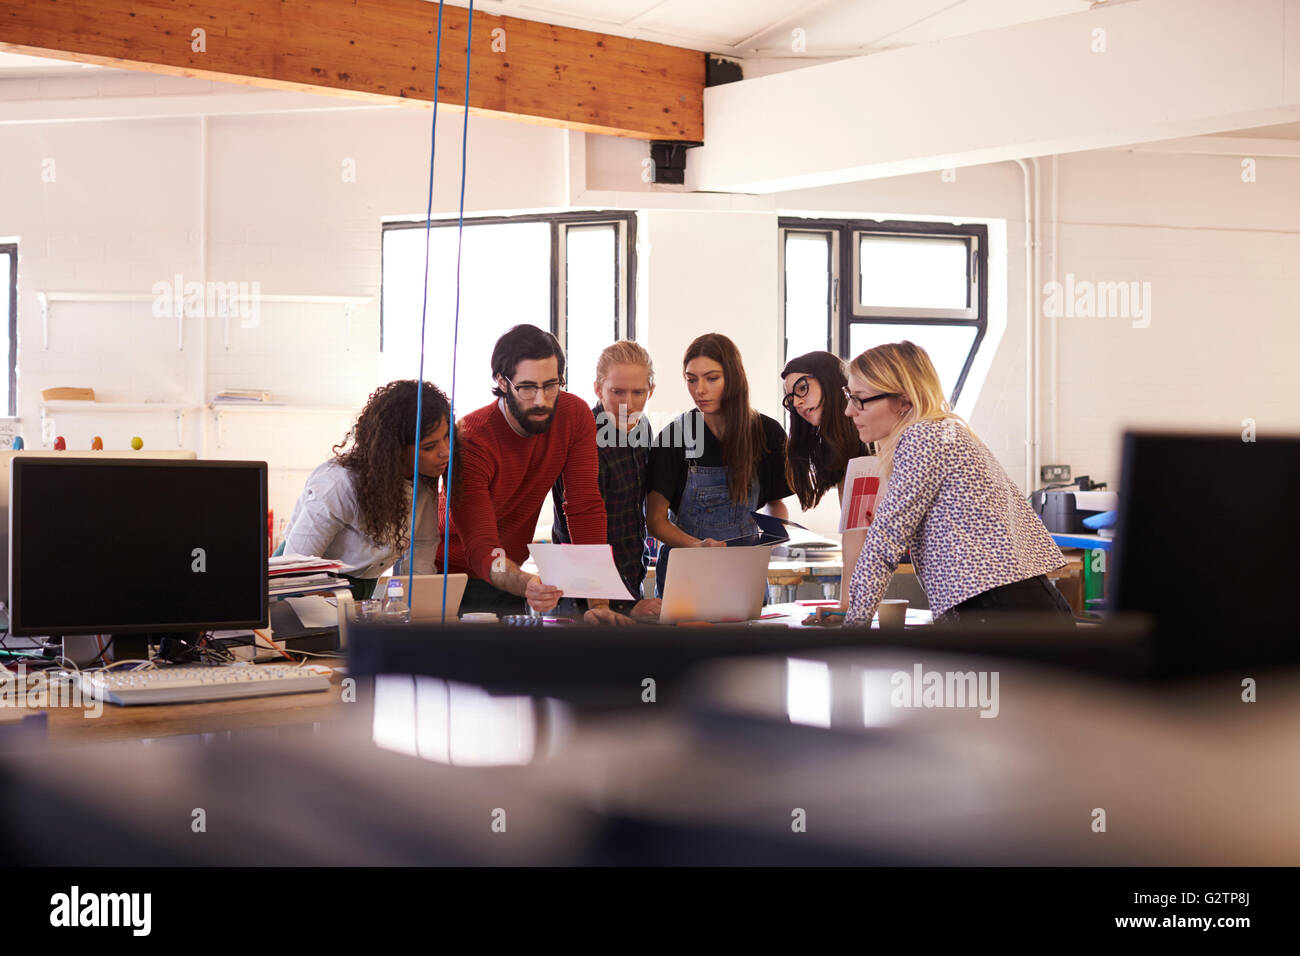 Wide Angle Shot Of Designers Brainstorming In Office Meeting - Stock Image